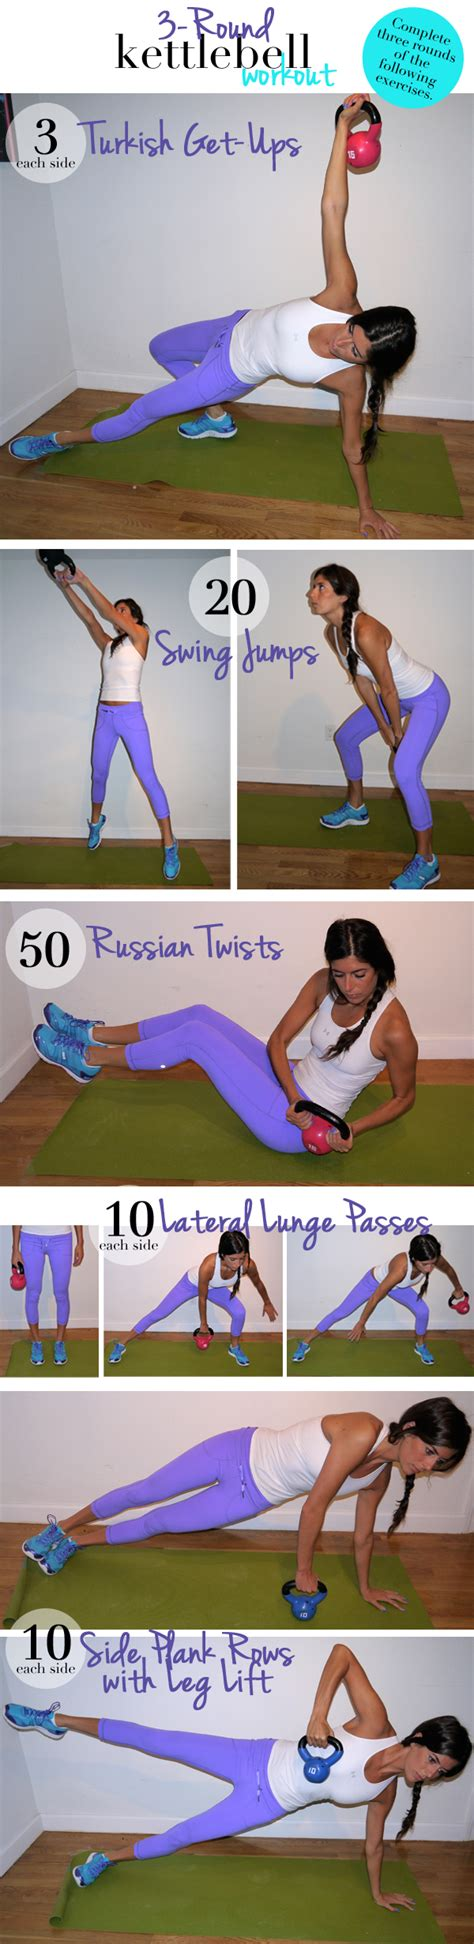 kettlebell workout kettle bell workouts round exercises body fitness exercise training abs kettlebells pumpsandiron wednesday neon lifts bells resistance tone